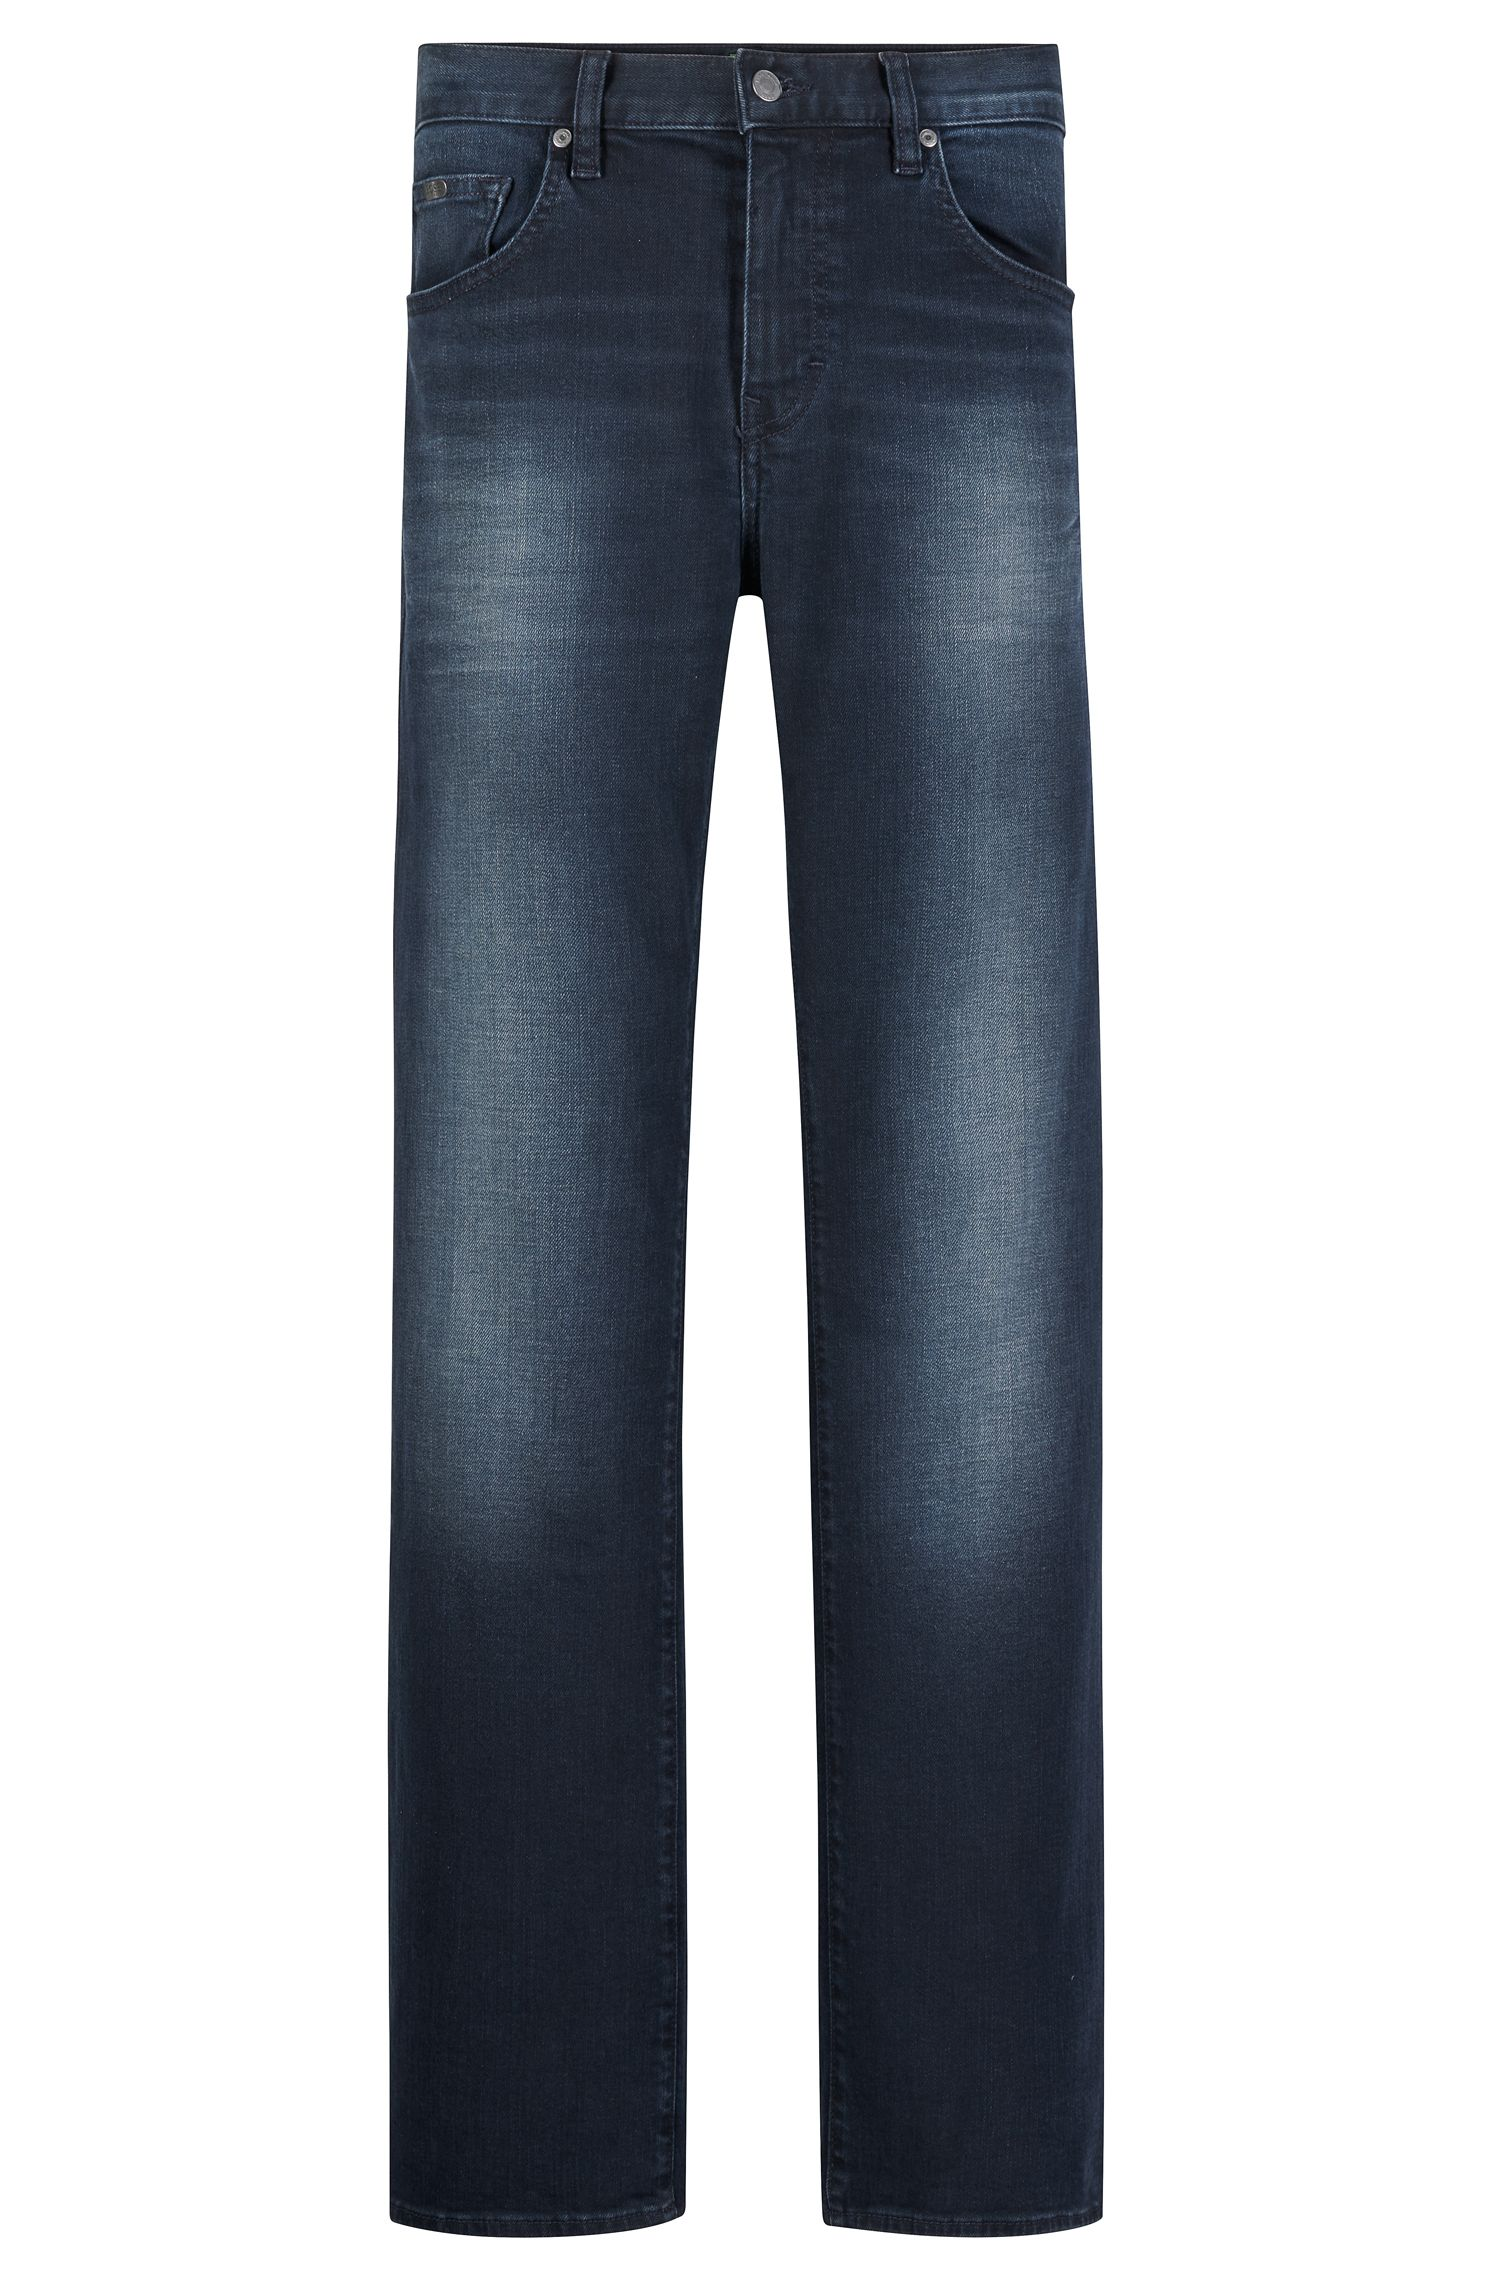 13 oz Stretch Cotton Jeans, Relaxed Fit | C-Kansas